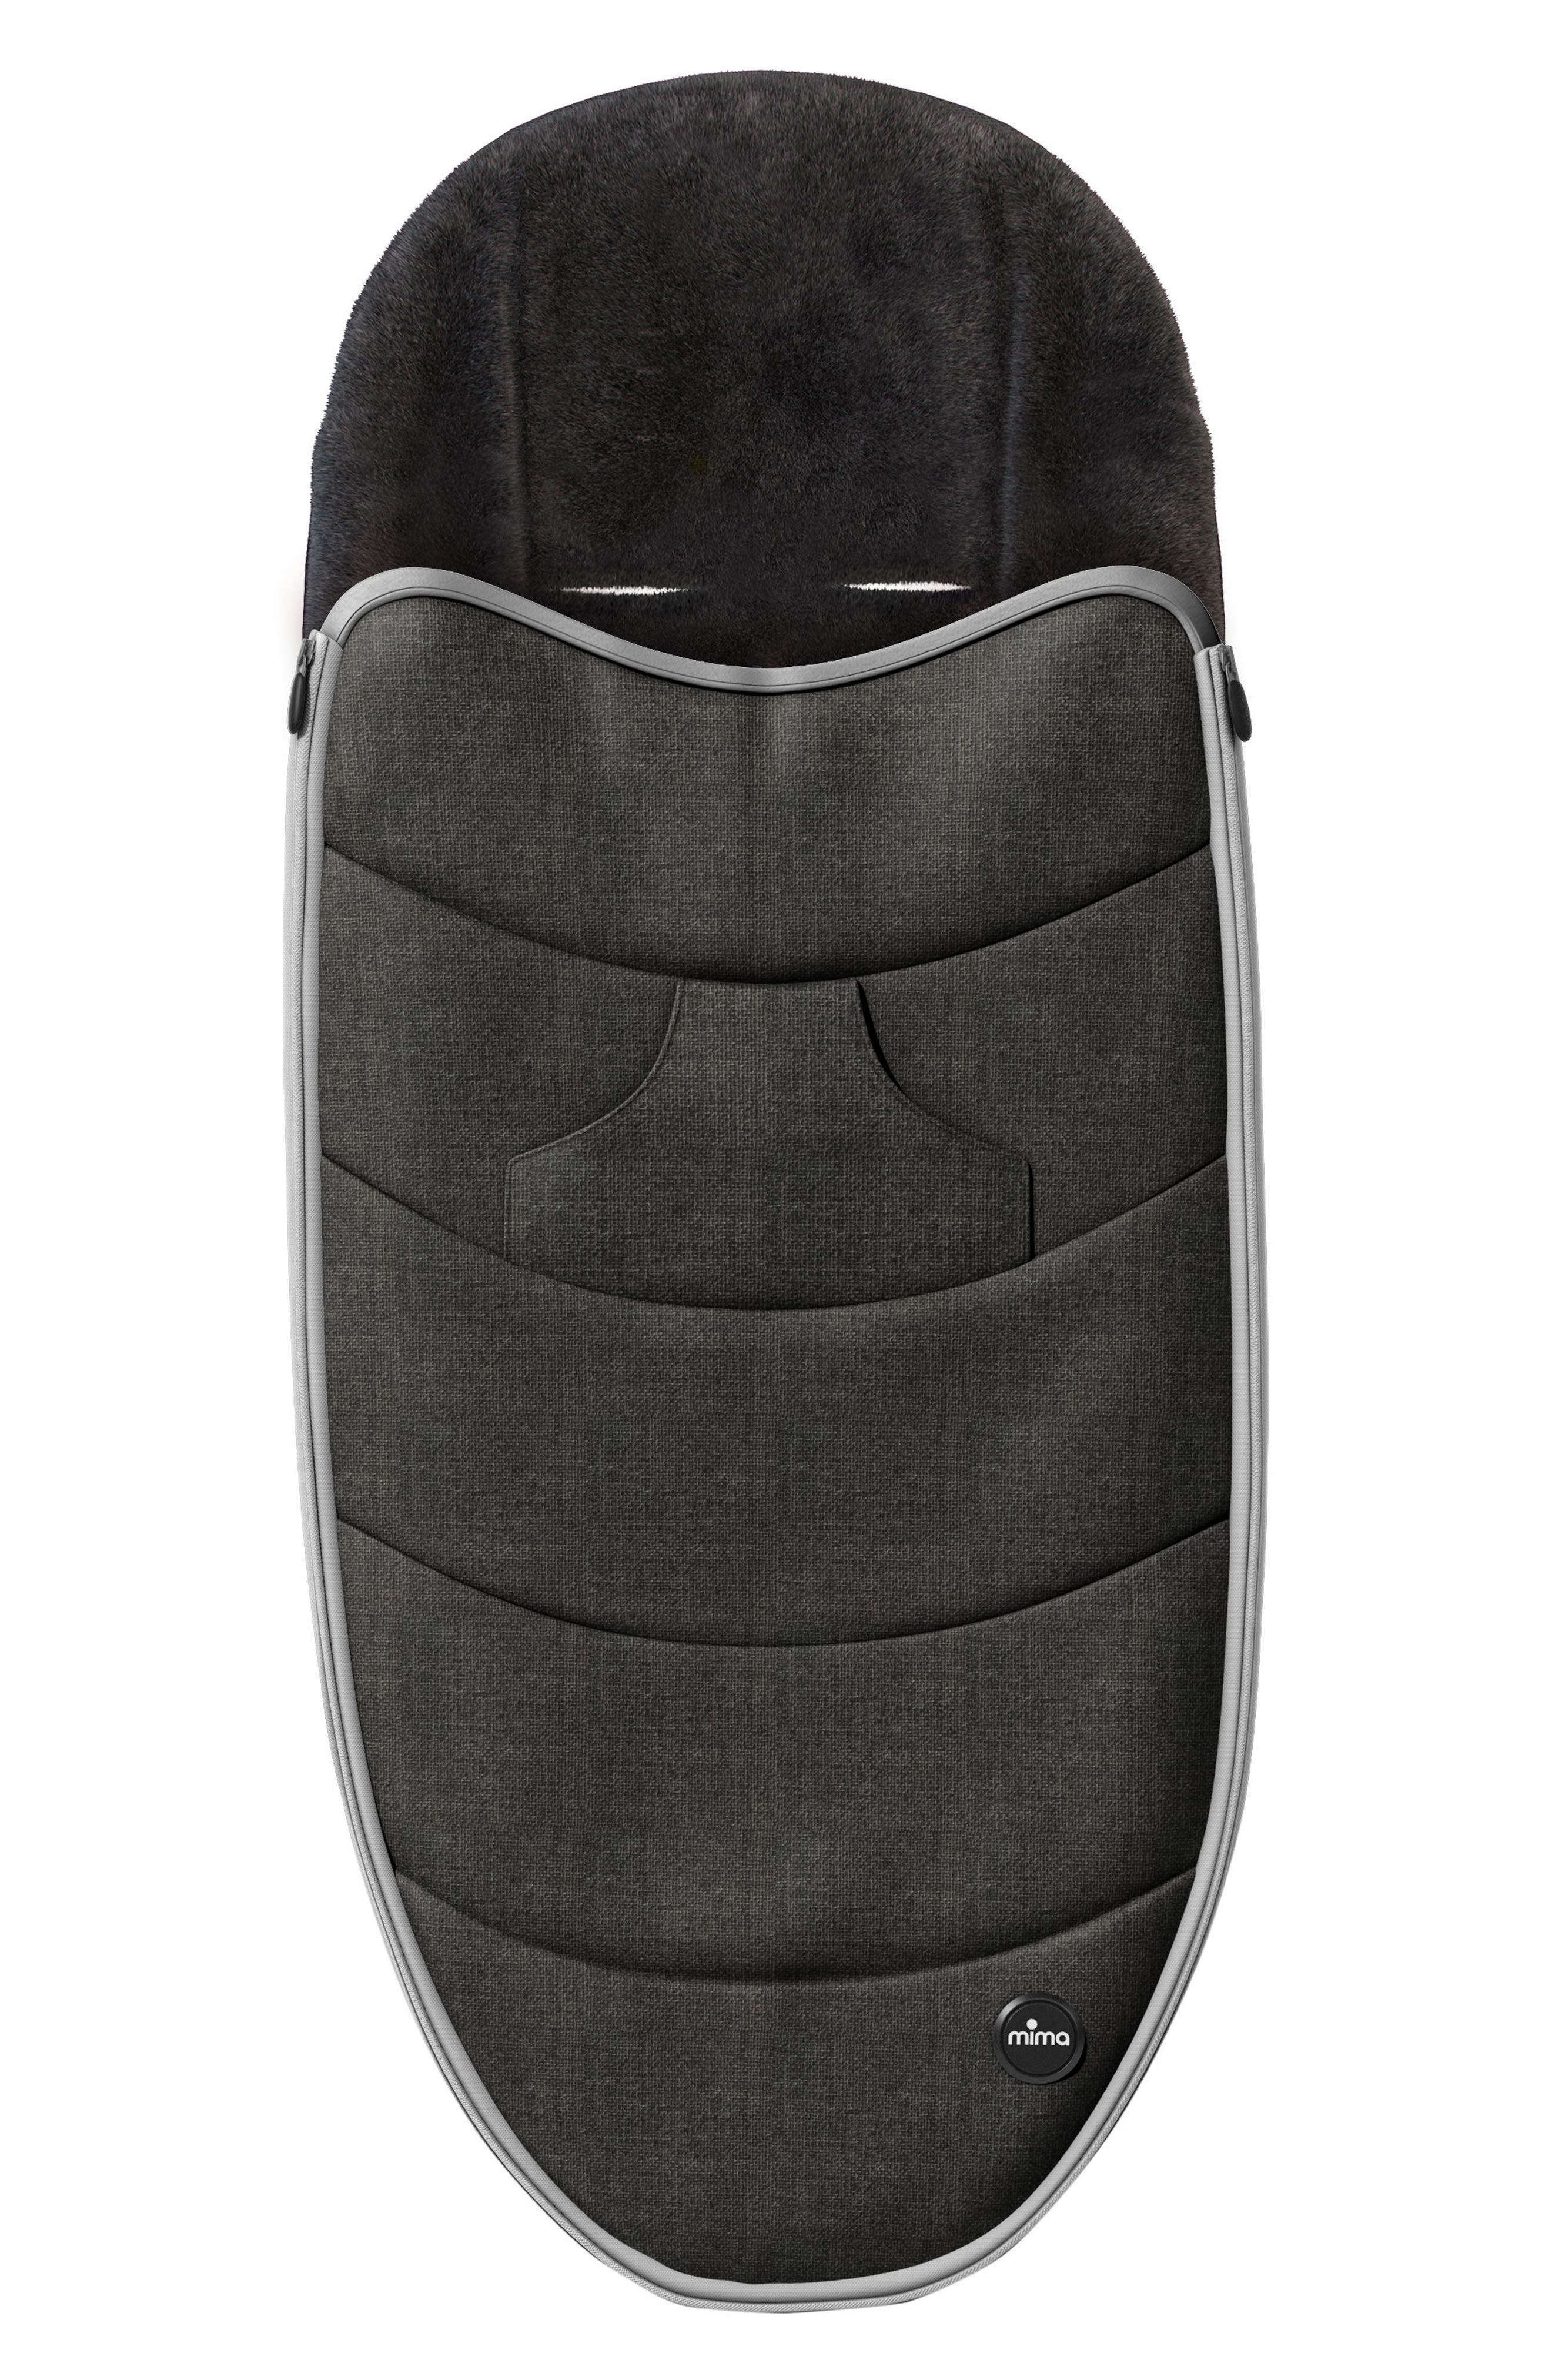 Footmuff for Zigi Strollers,                             Main thumbnail 1, color,                             Charcoal